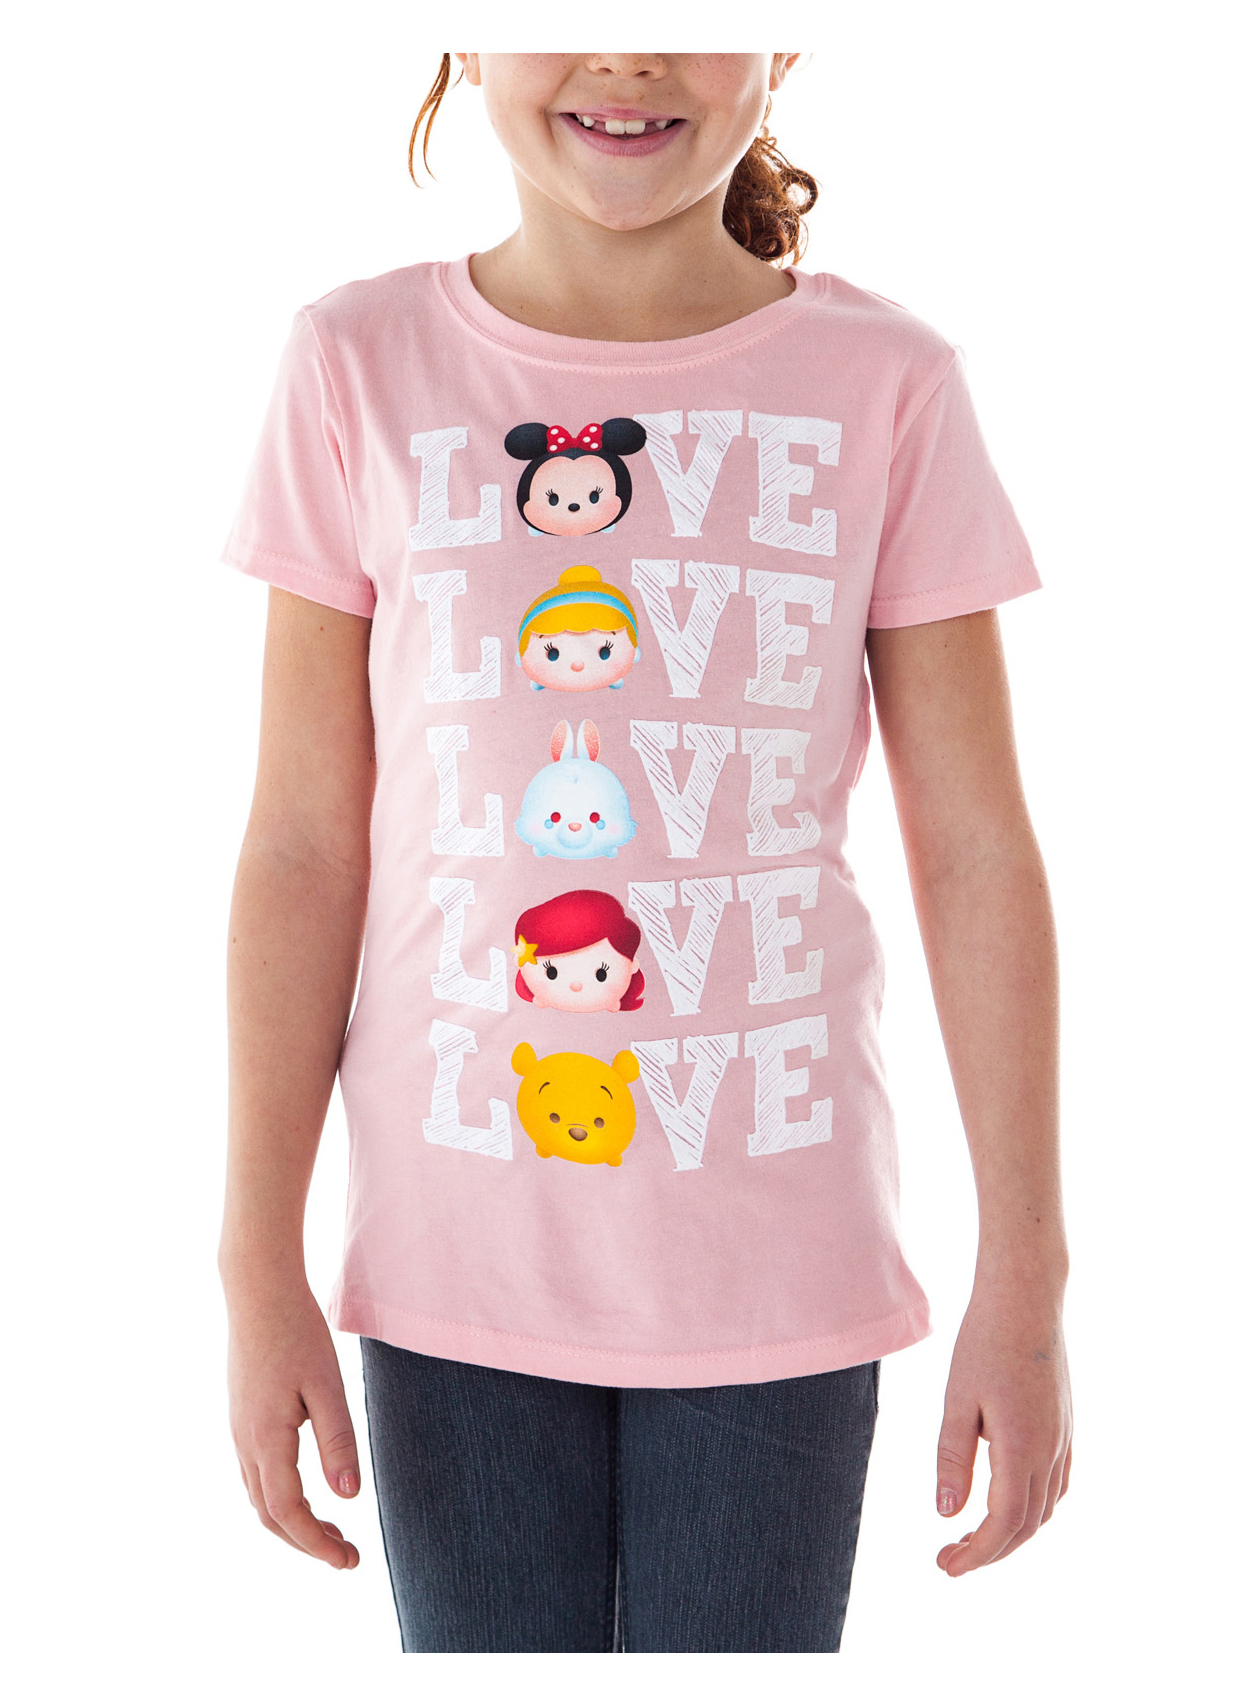 NEW Girls Graphic T-Shirt Size XS 4-5 Pink Disney Minnie Mouse Cotton